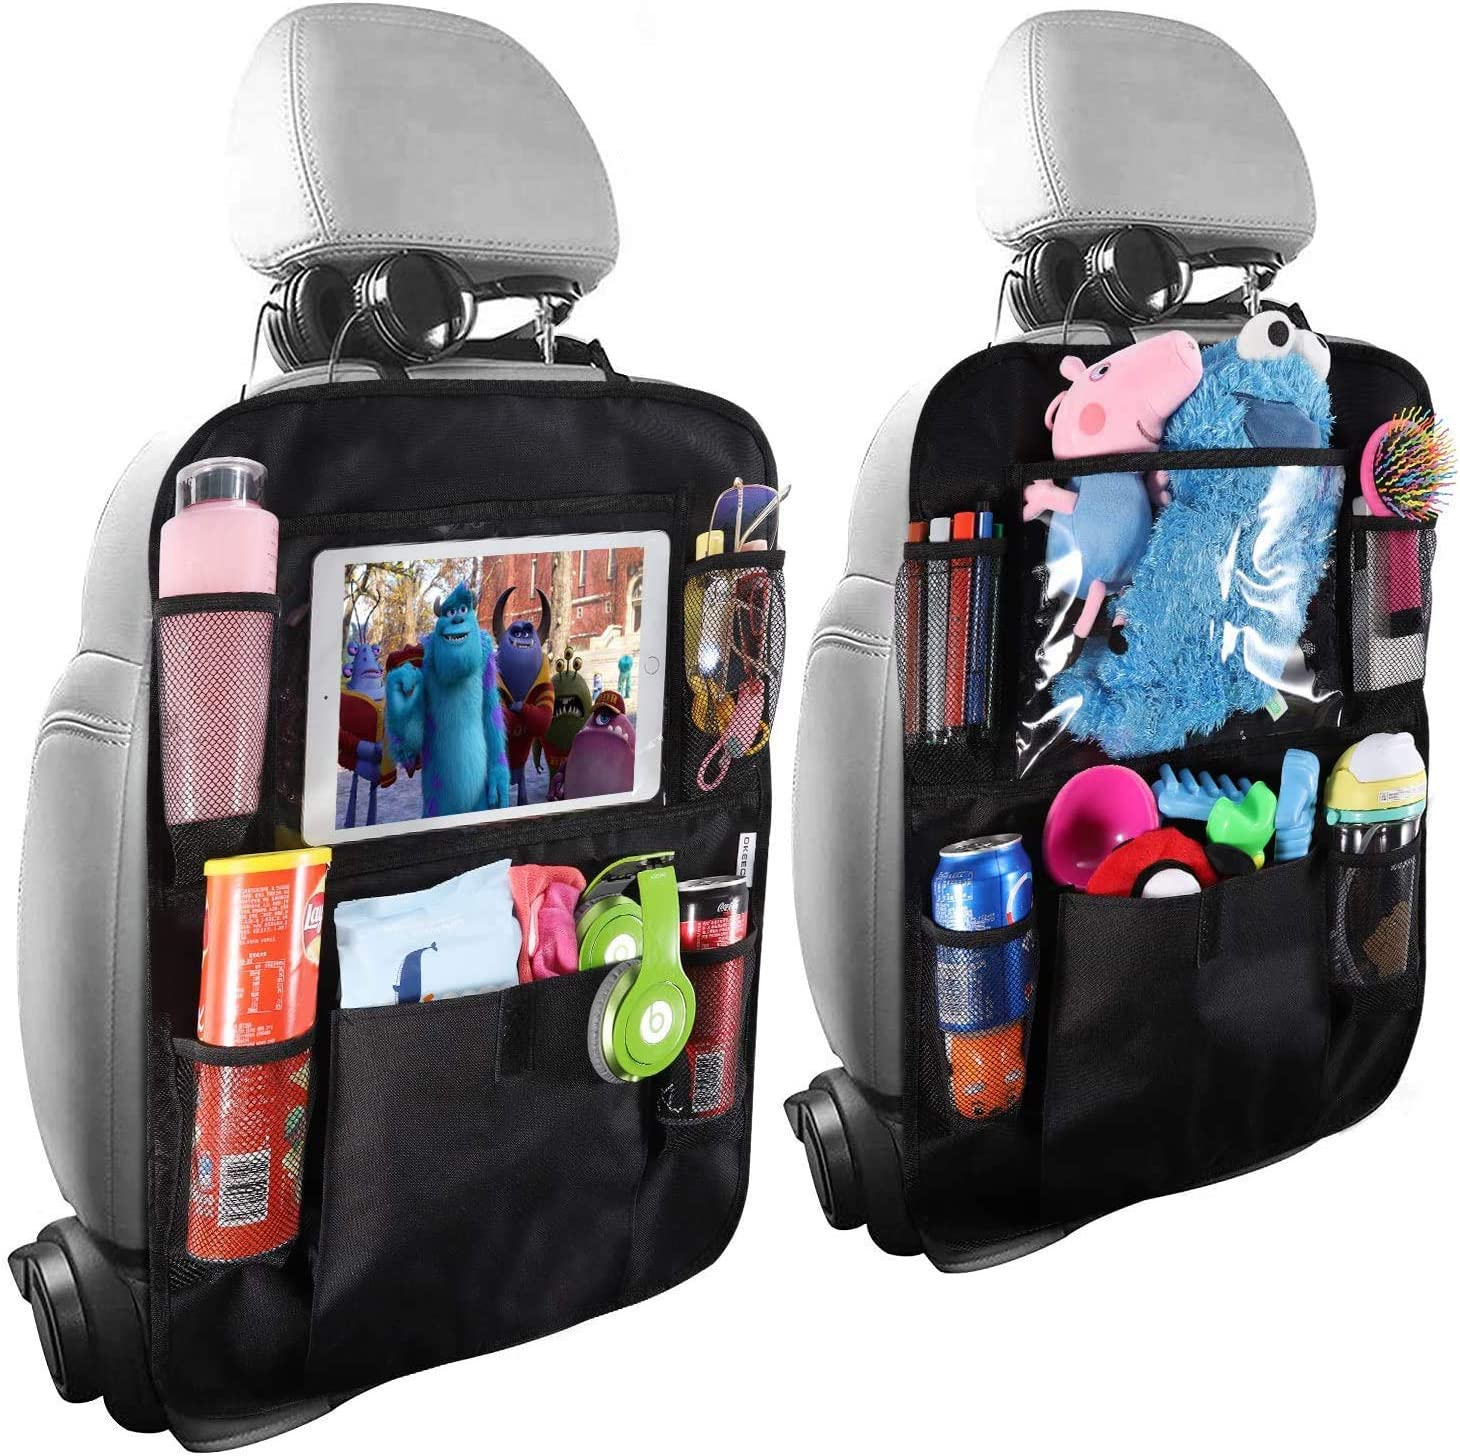 9 Storage Pockets Seat Back Protectors Kick Mats for Kids Toddlers Travel Accessories Car Backseat Organizer with 10 Table Holder